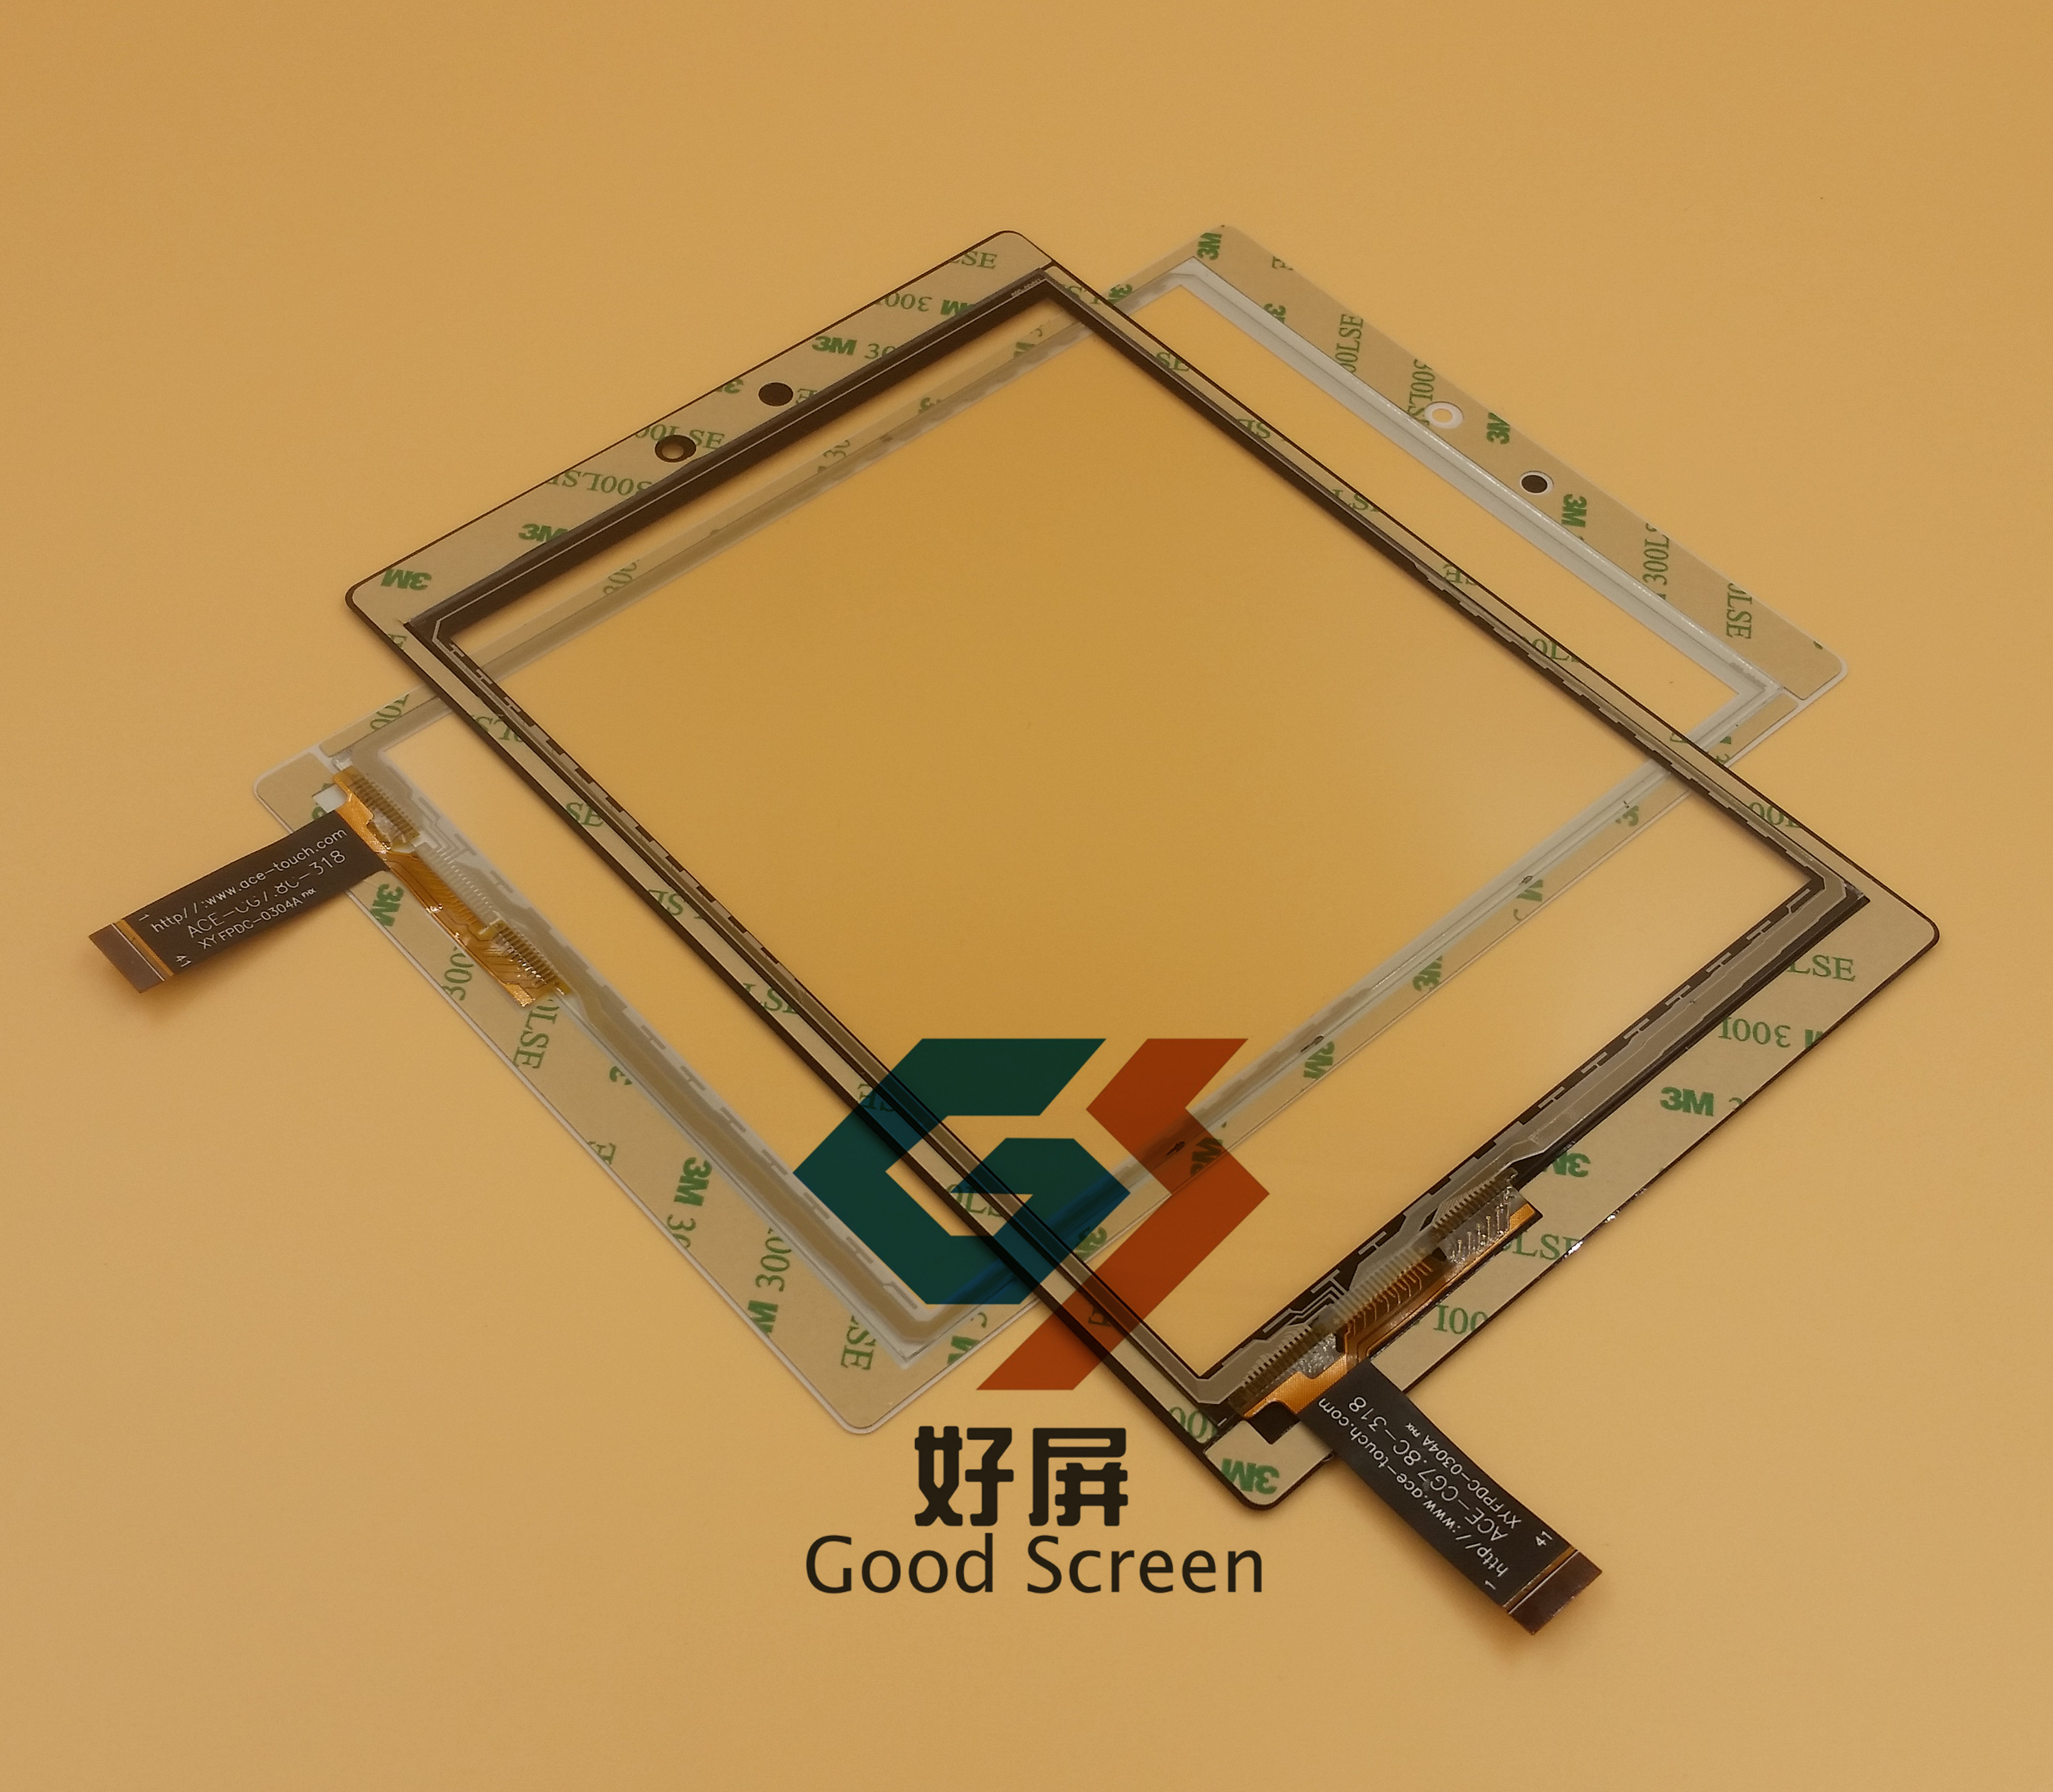 ACE CG7 8C 318 XY FPDC 0304A ACE CG7 8C 318 FPC 7 85 inch PMT7077